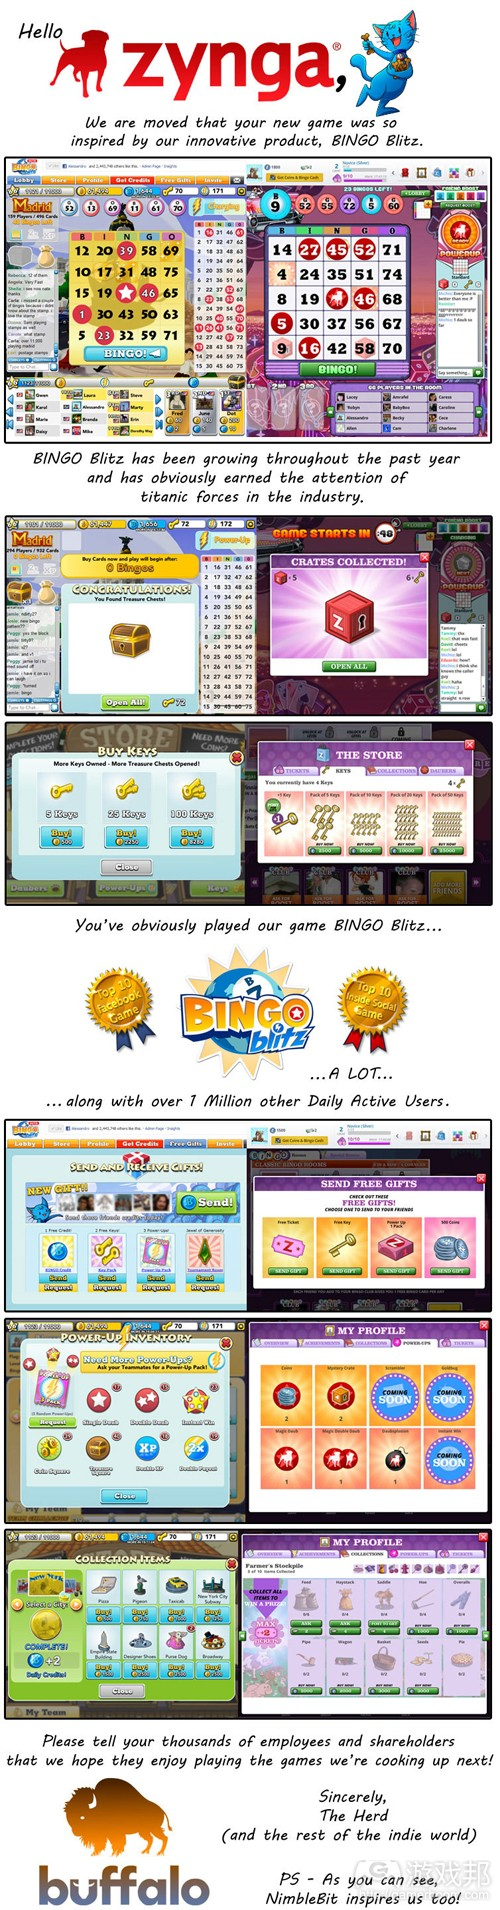 BingoBlitz Congratulations(from buffalo-ggn.net)